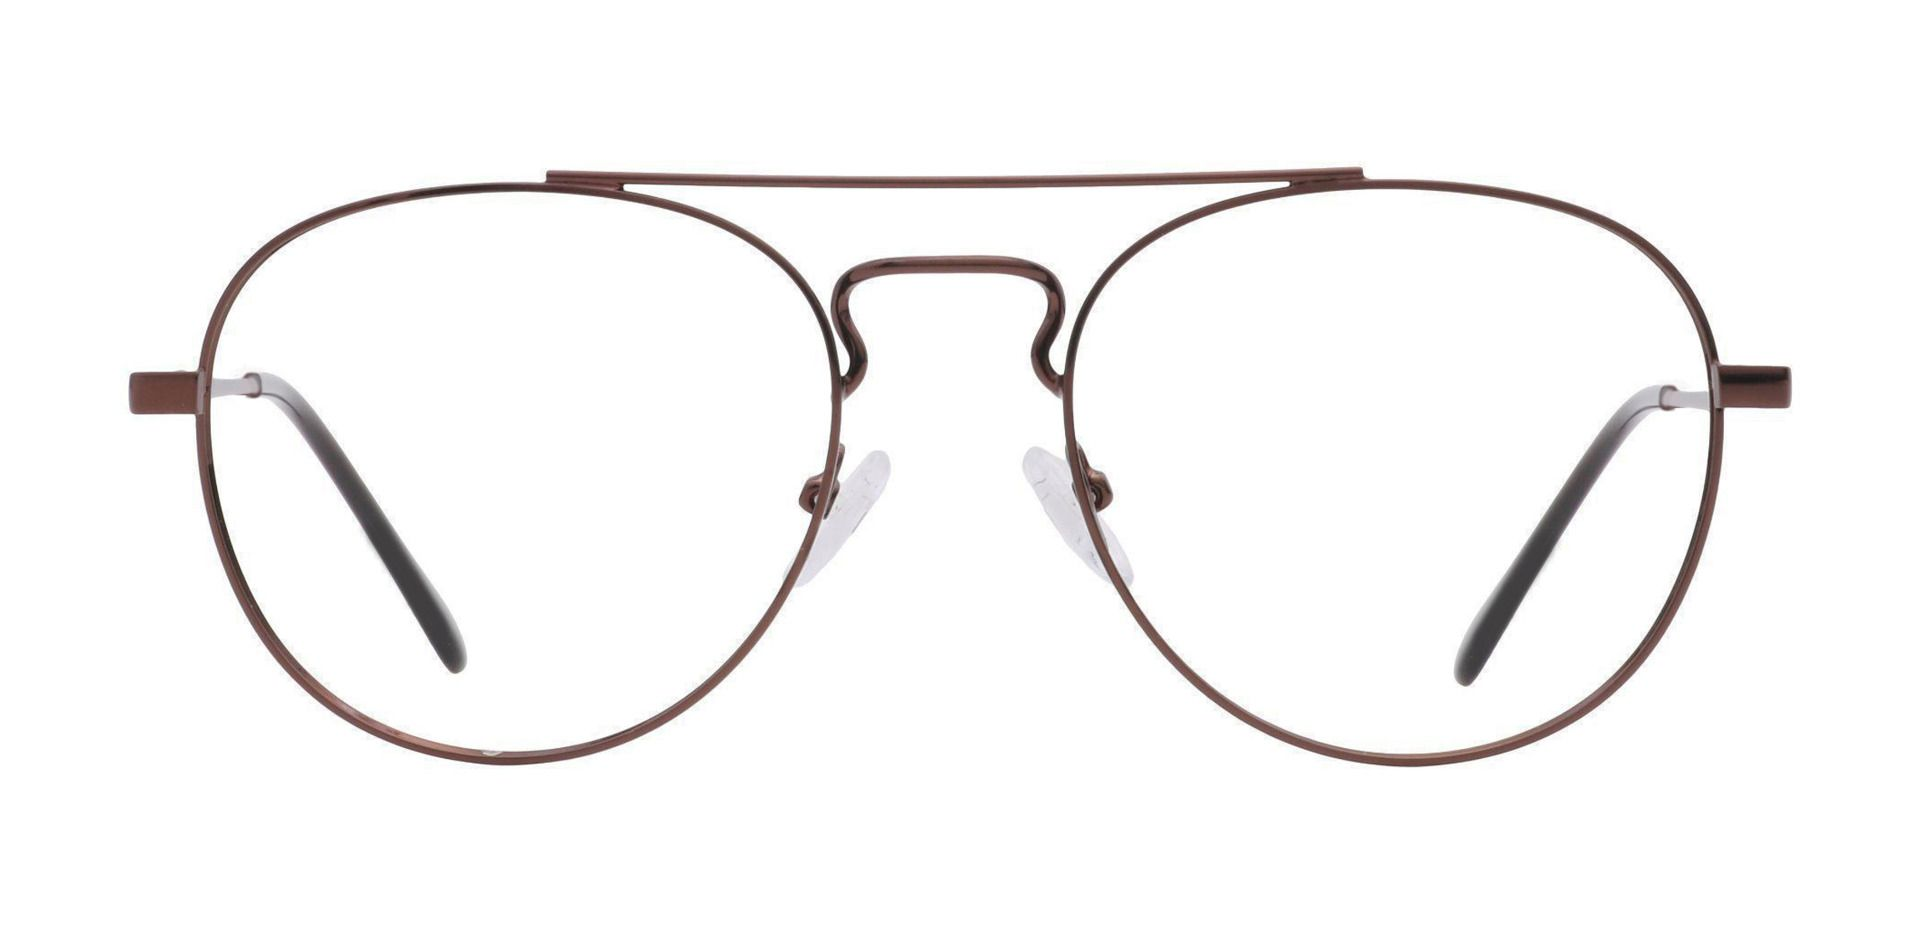 Trapp Aviator Lined Bifocal Glasses - Brown